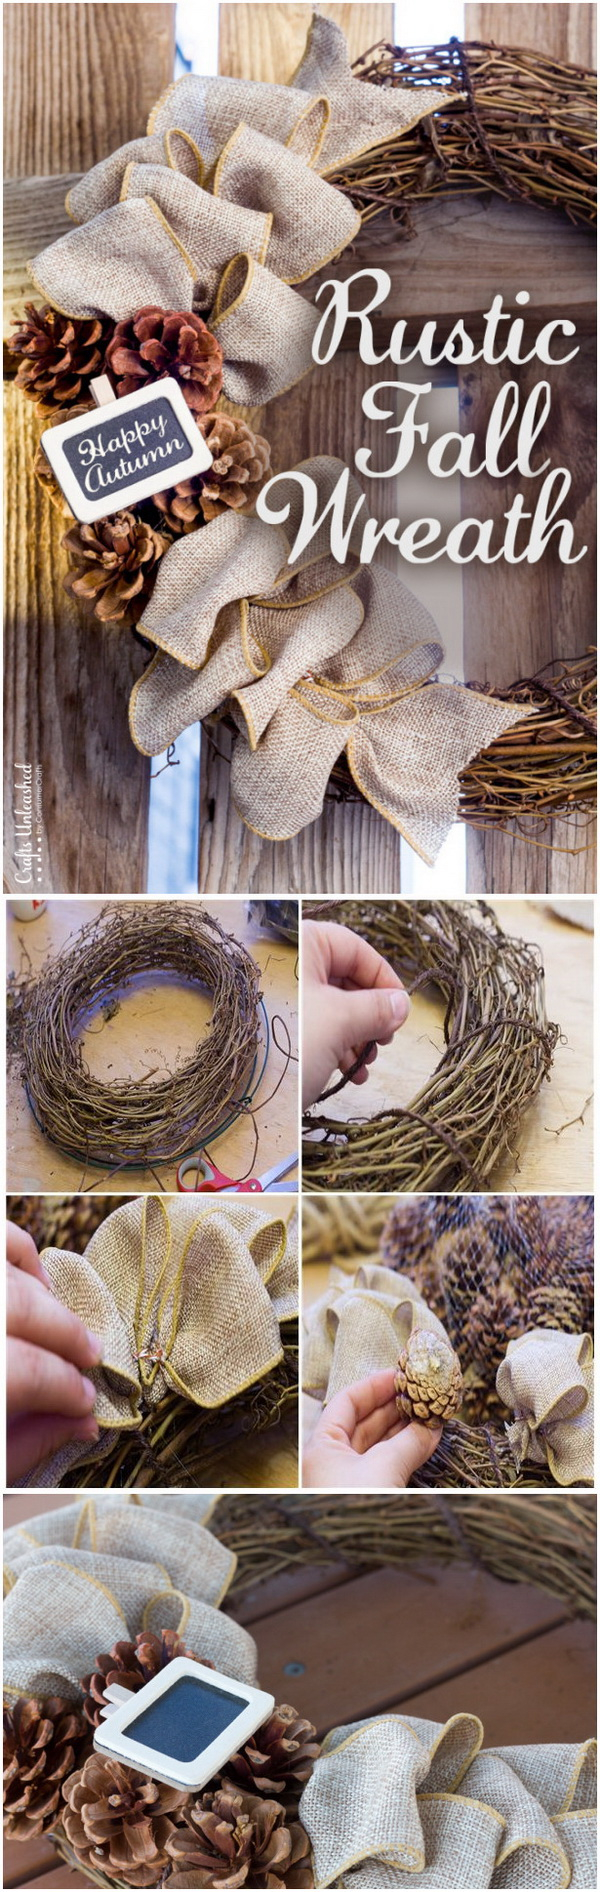 Rustic DIY Fall Wreath. This wreath is made out of grapevine, and completed with burlap or any other fall ornaments, like pine cones and a chalkboard fall sign.